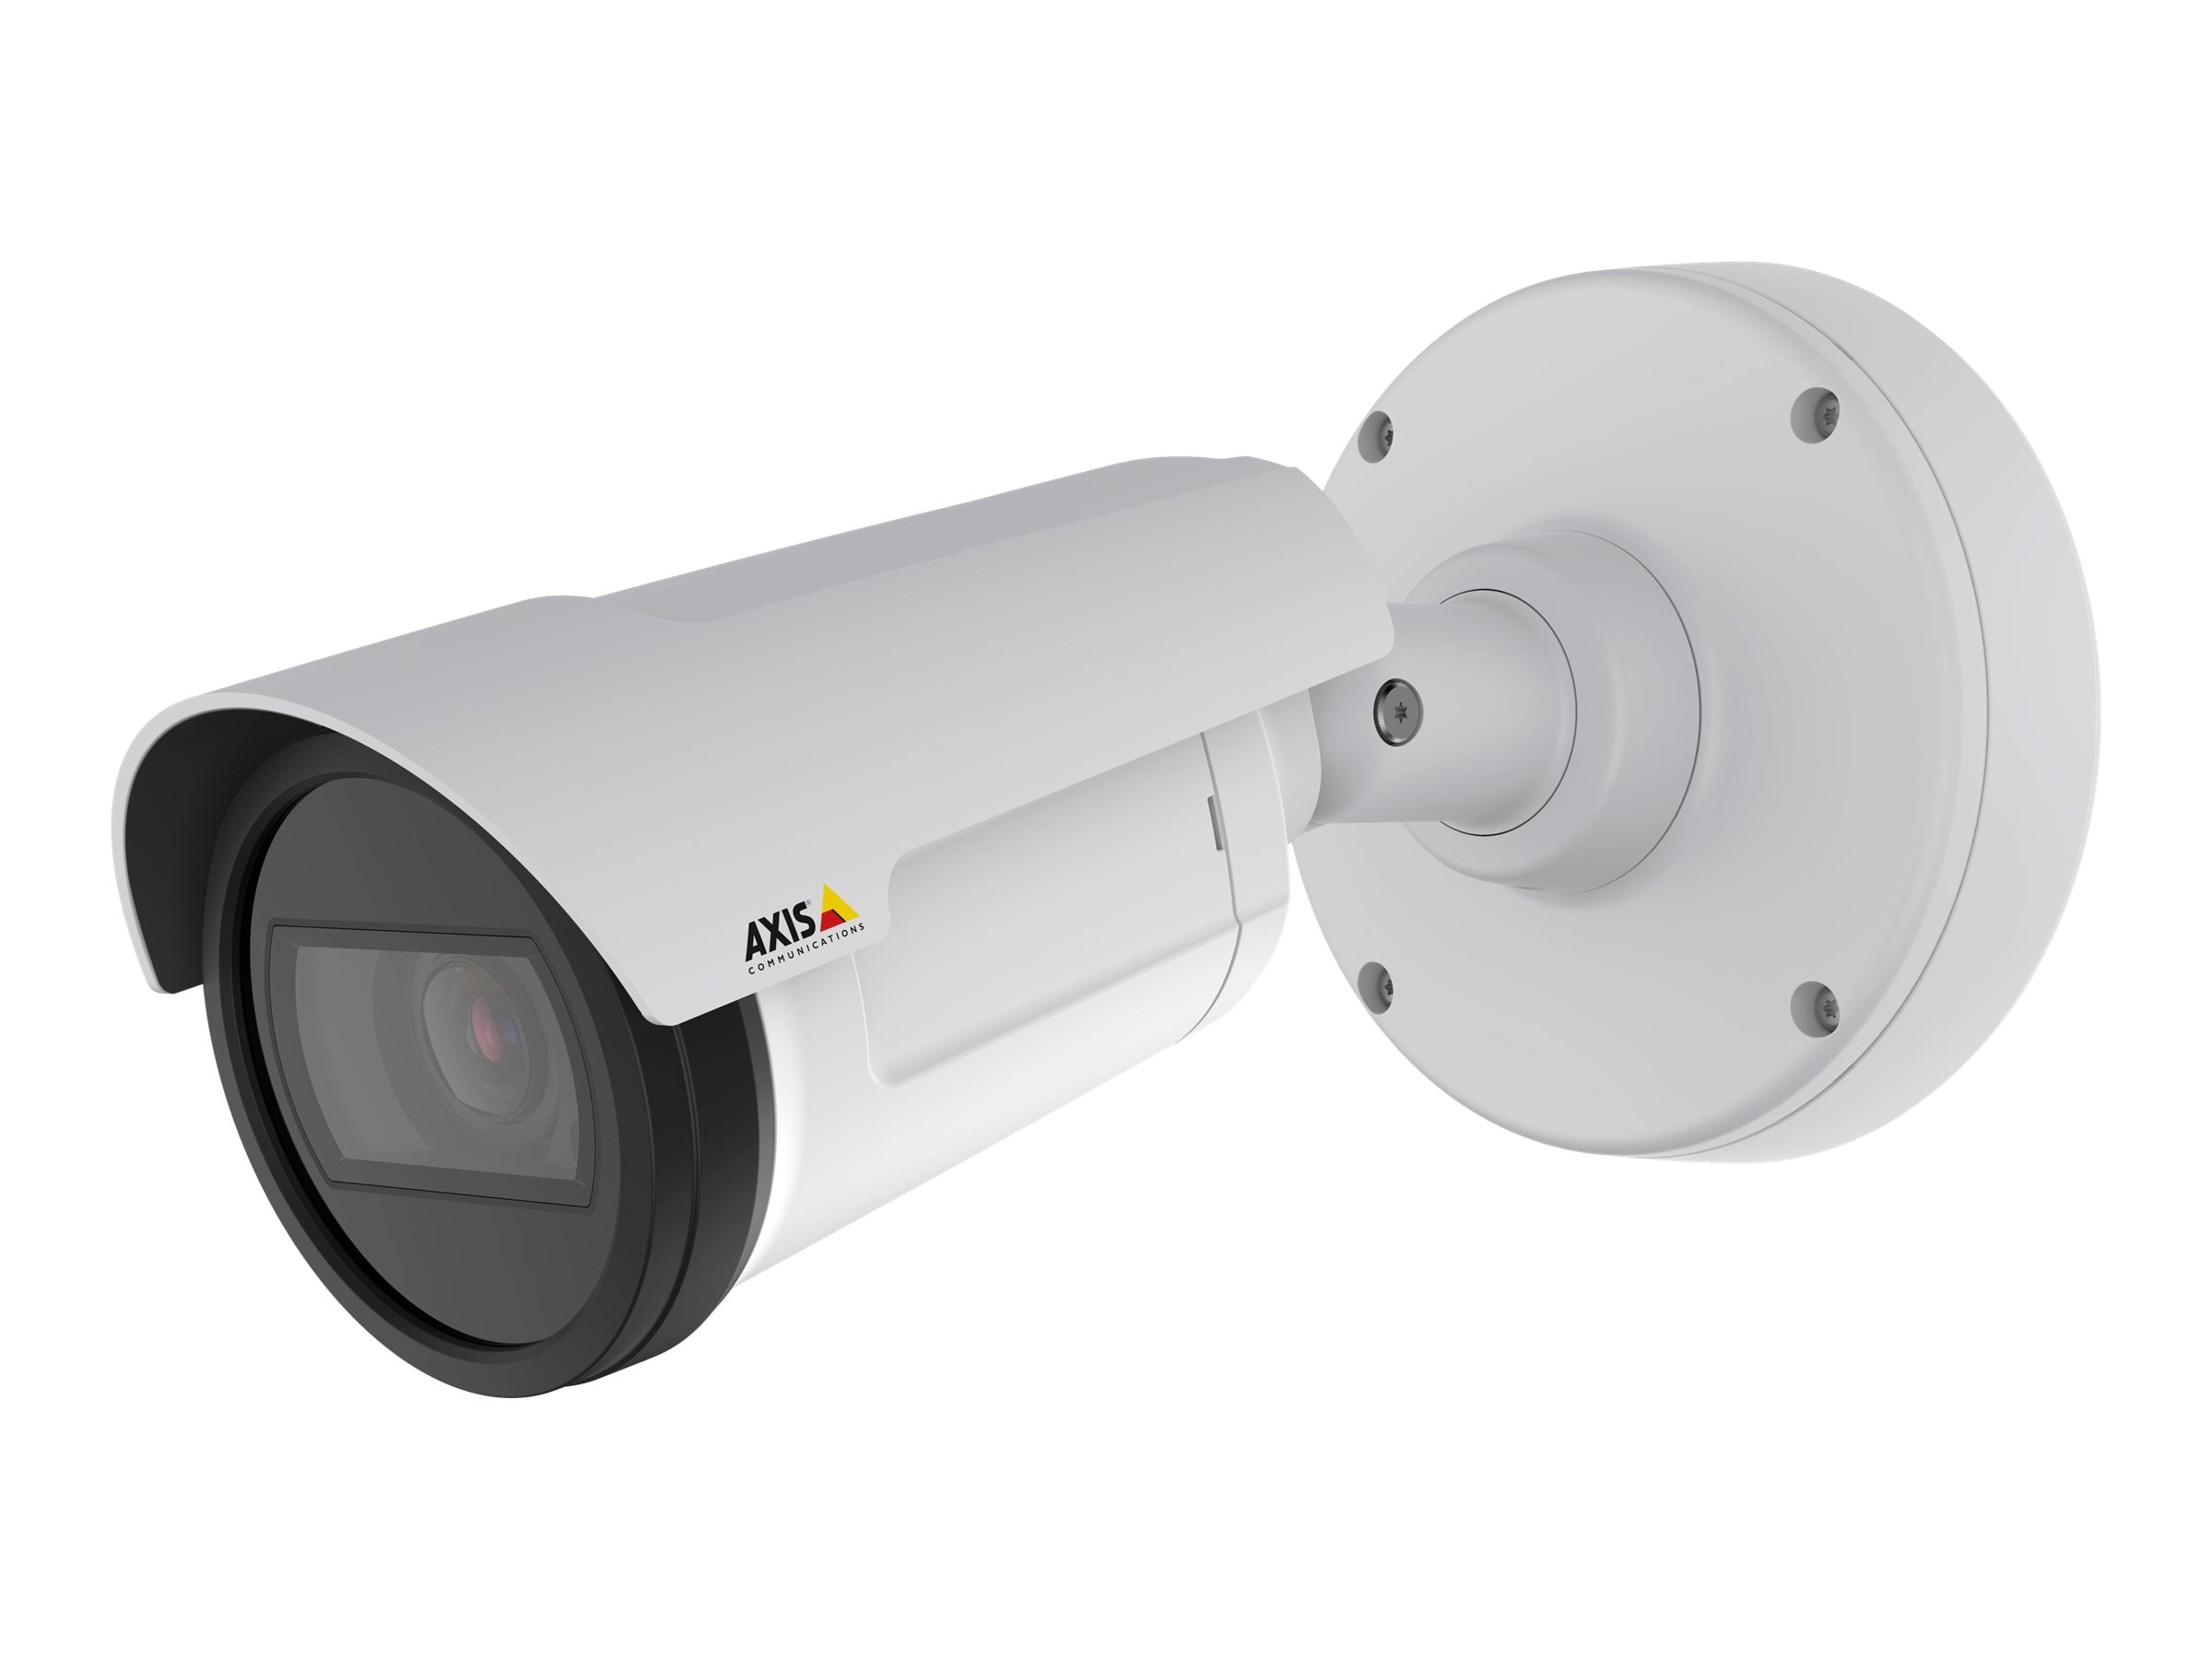 Axis P1425-E Outdoor Fixed Network Camera with 3-10.5mm Lens